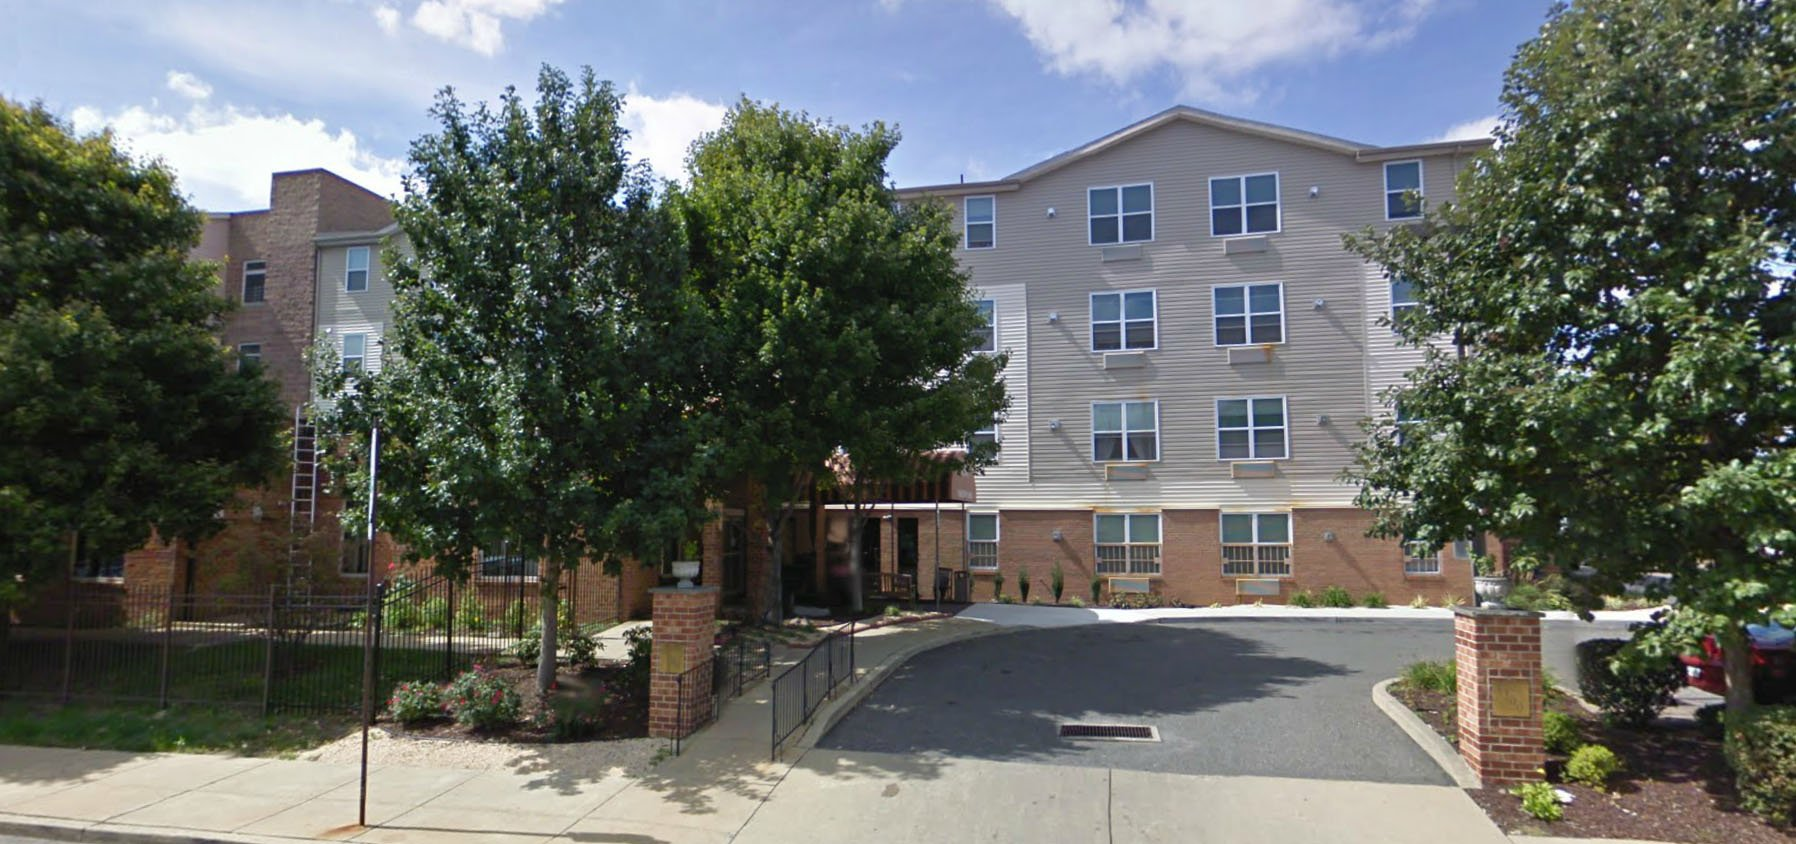 apartments for rent in philadelphia northeast. yorktown arms apartments for rent in philadelphia northeast